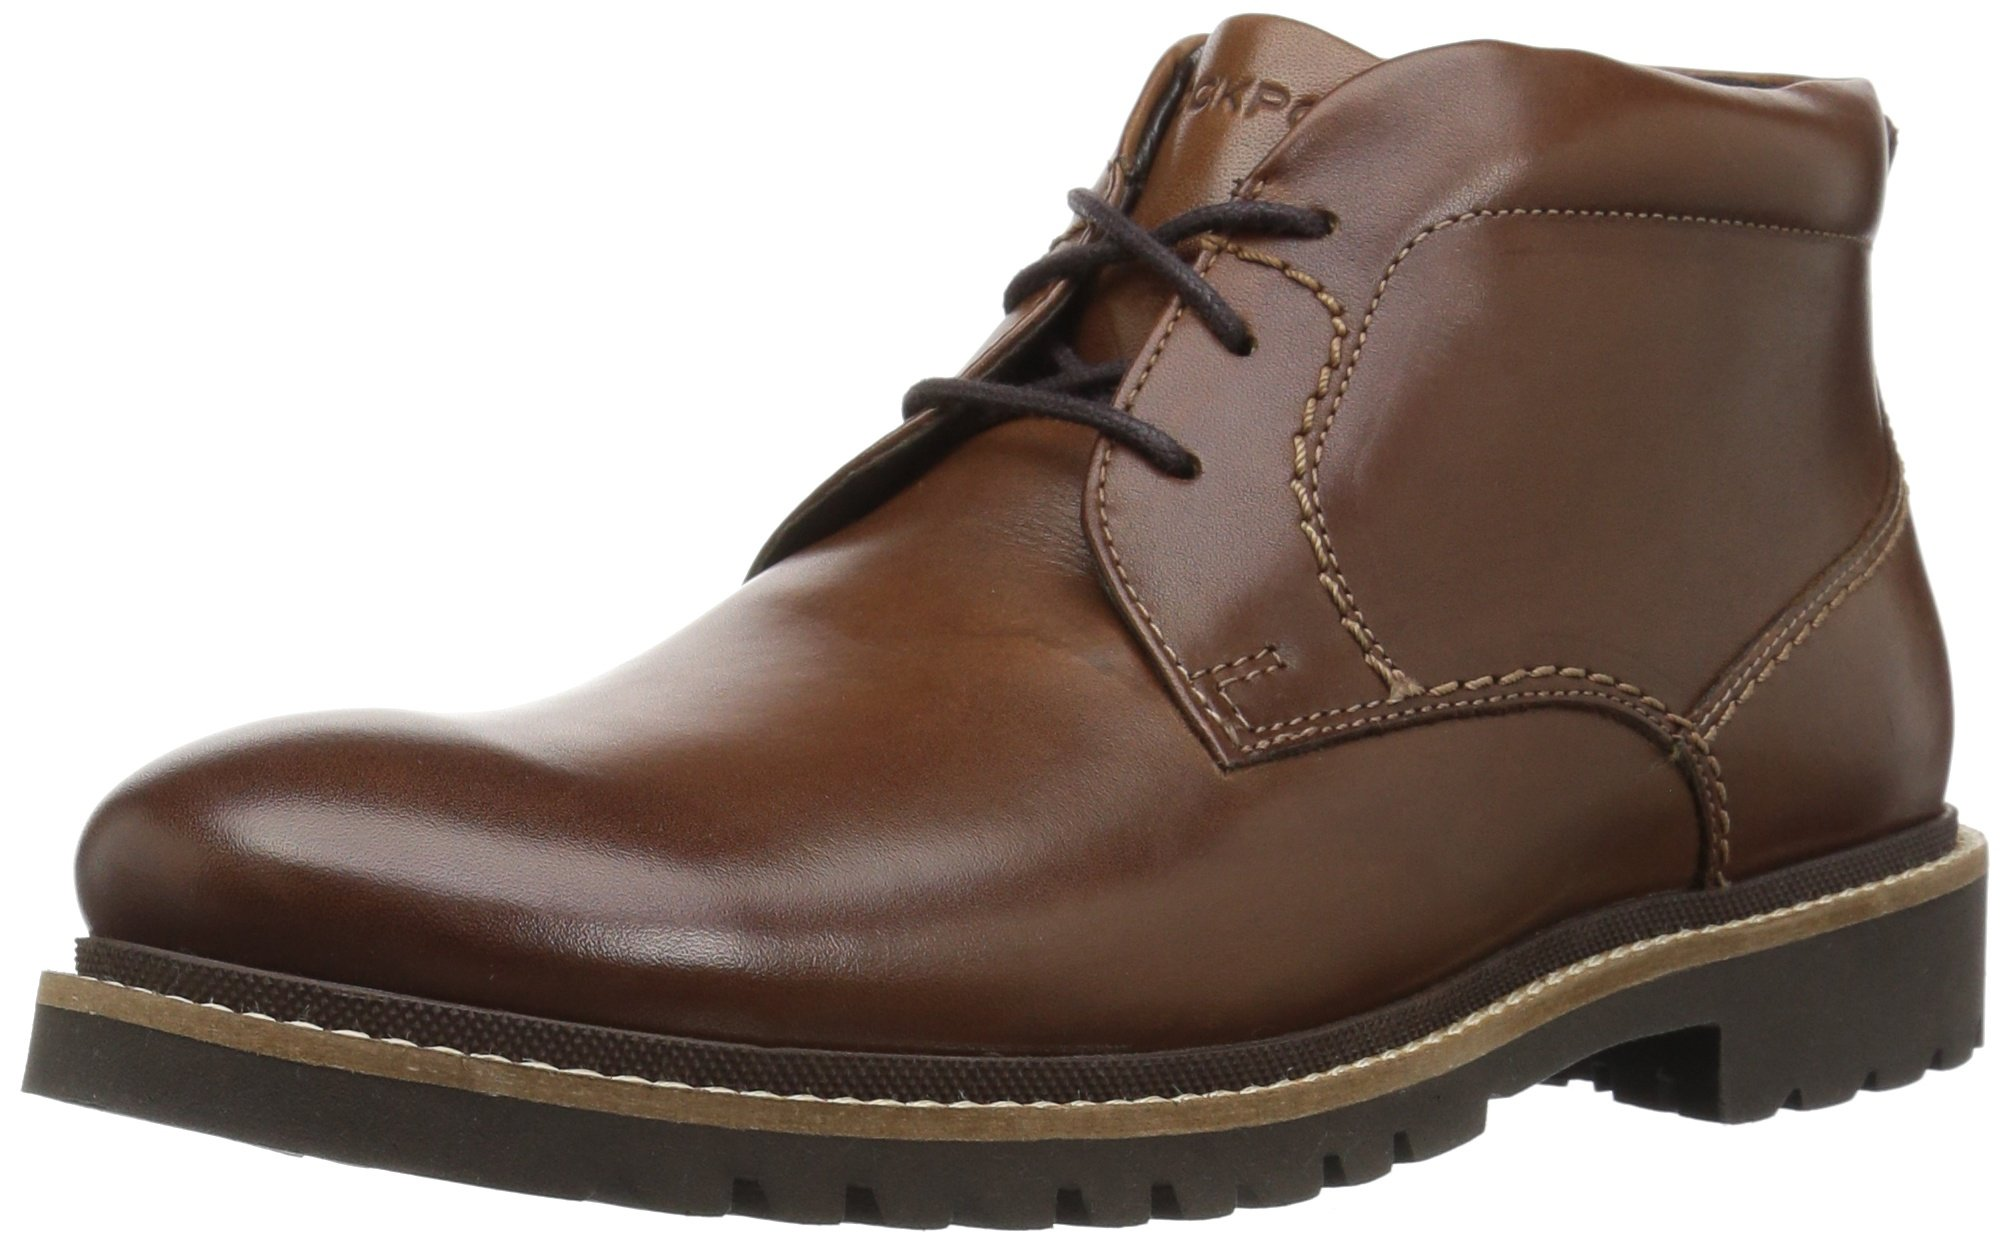 Rockport Men's Marshall Chukka Chukka Boot, Dark Brown Leather, 15 M US